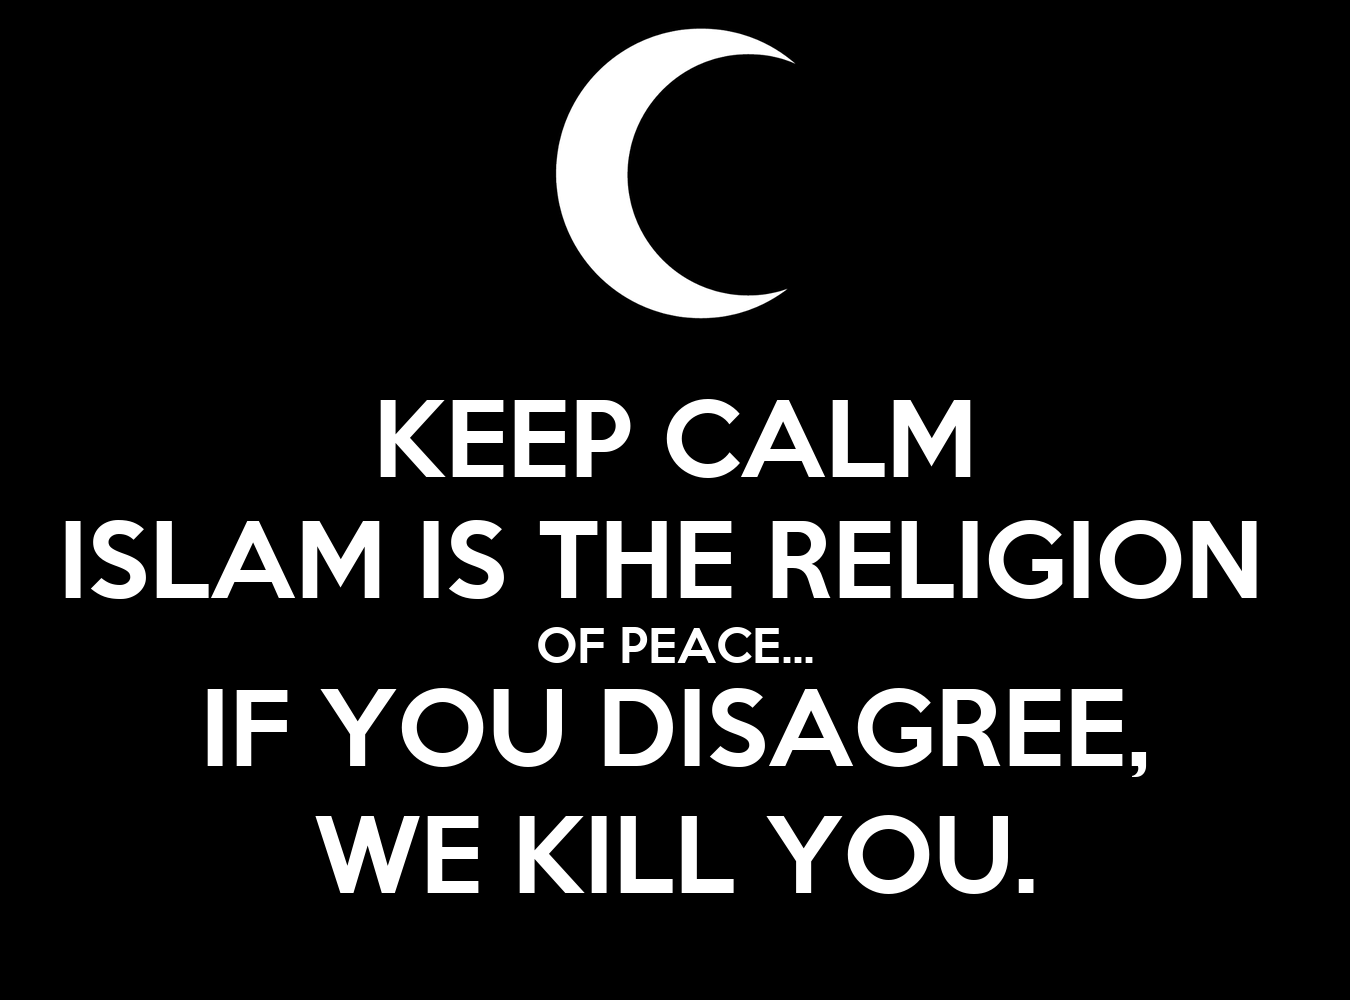 essays on islam is religion of peace Introduction all religion preaches peace and brotherhood and islam is no different however, how do you justify the killing of thousands of innocents by the islamic.